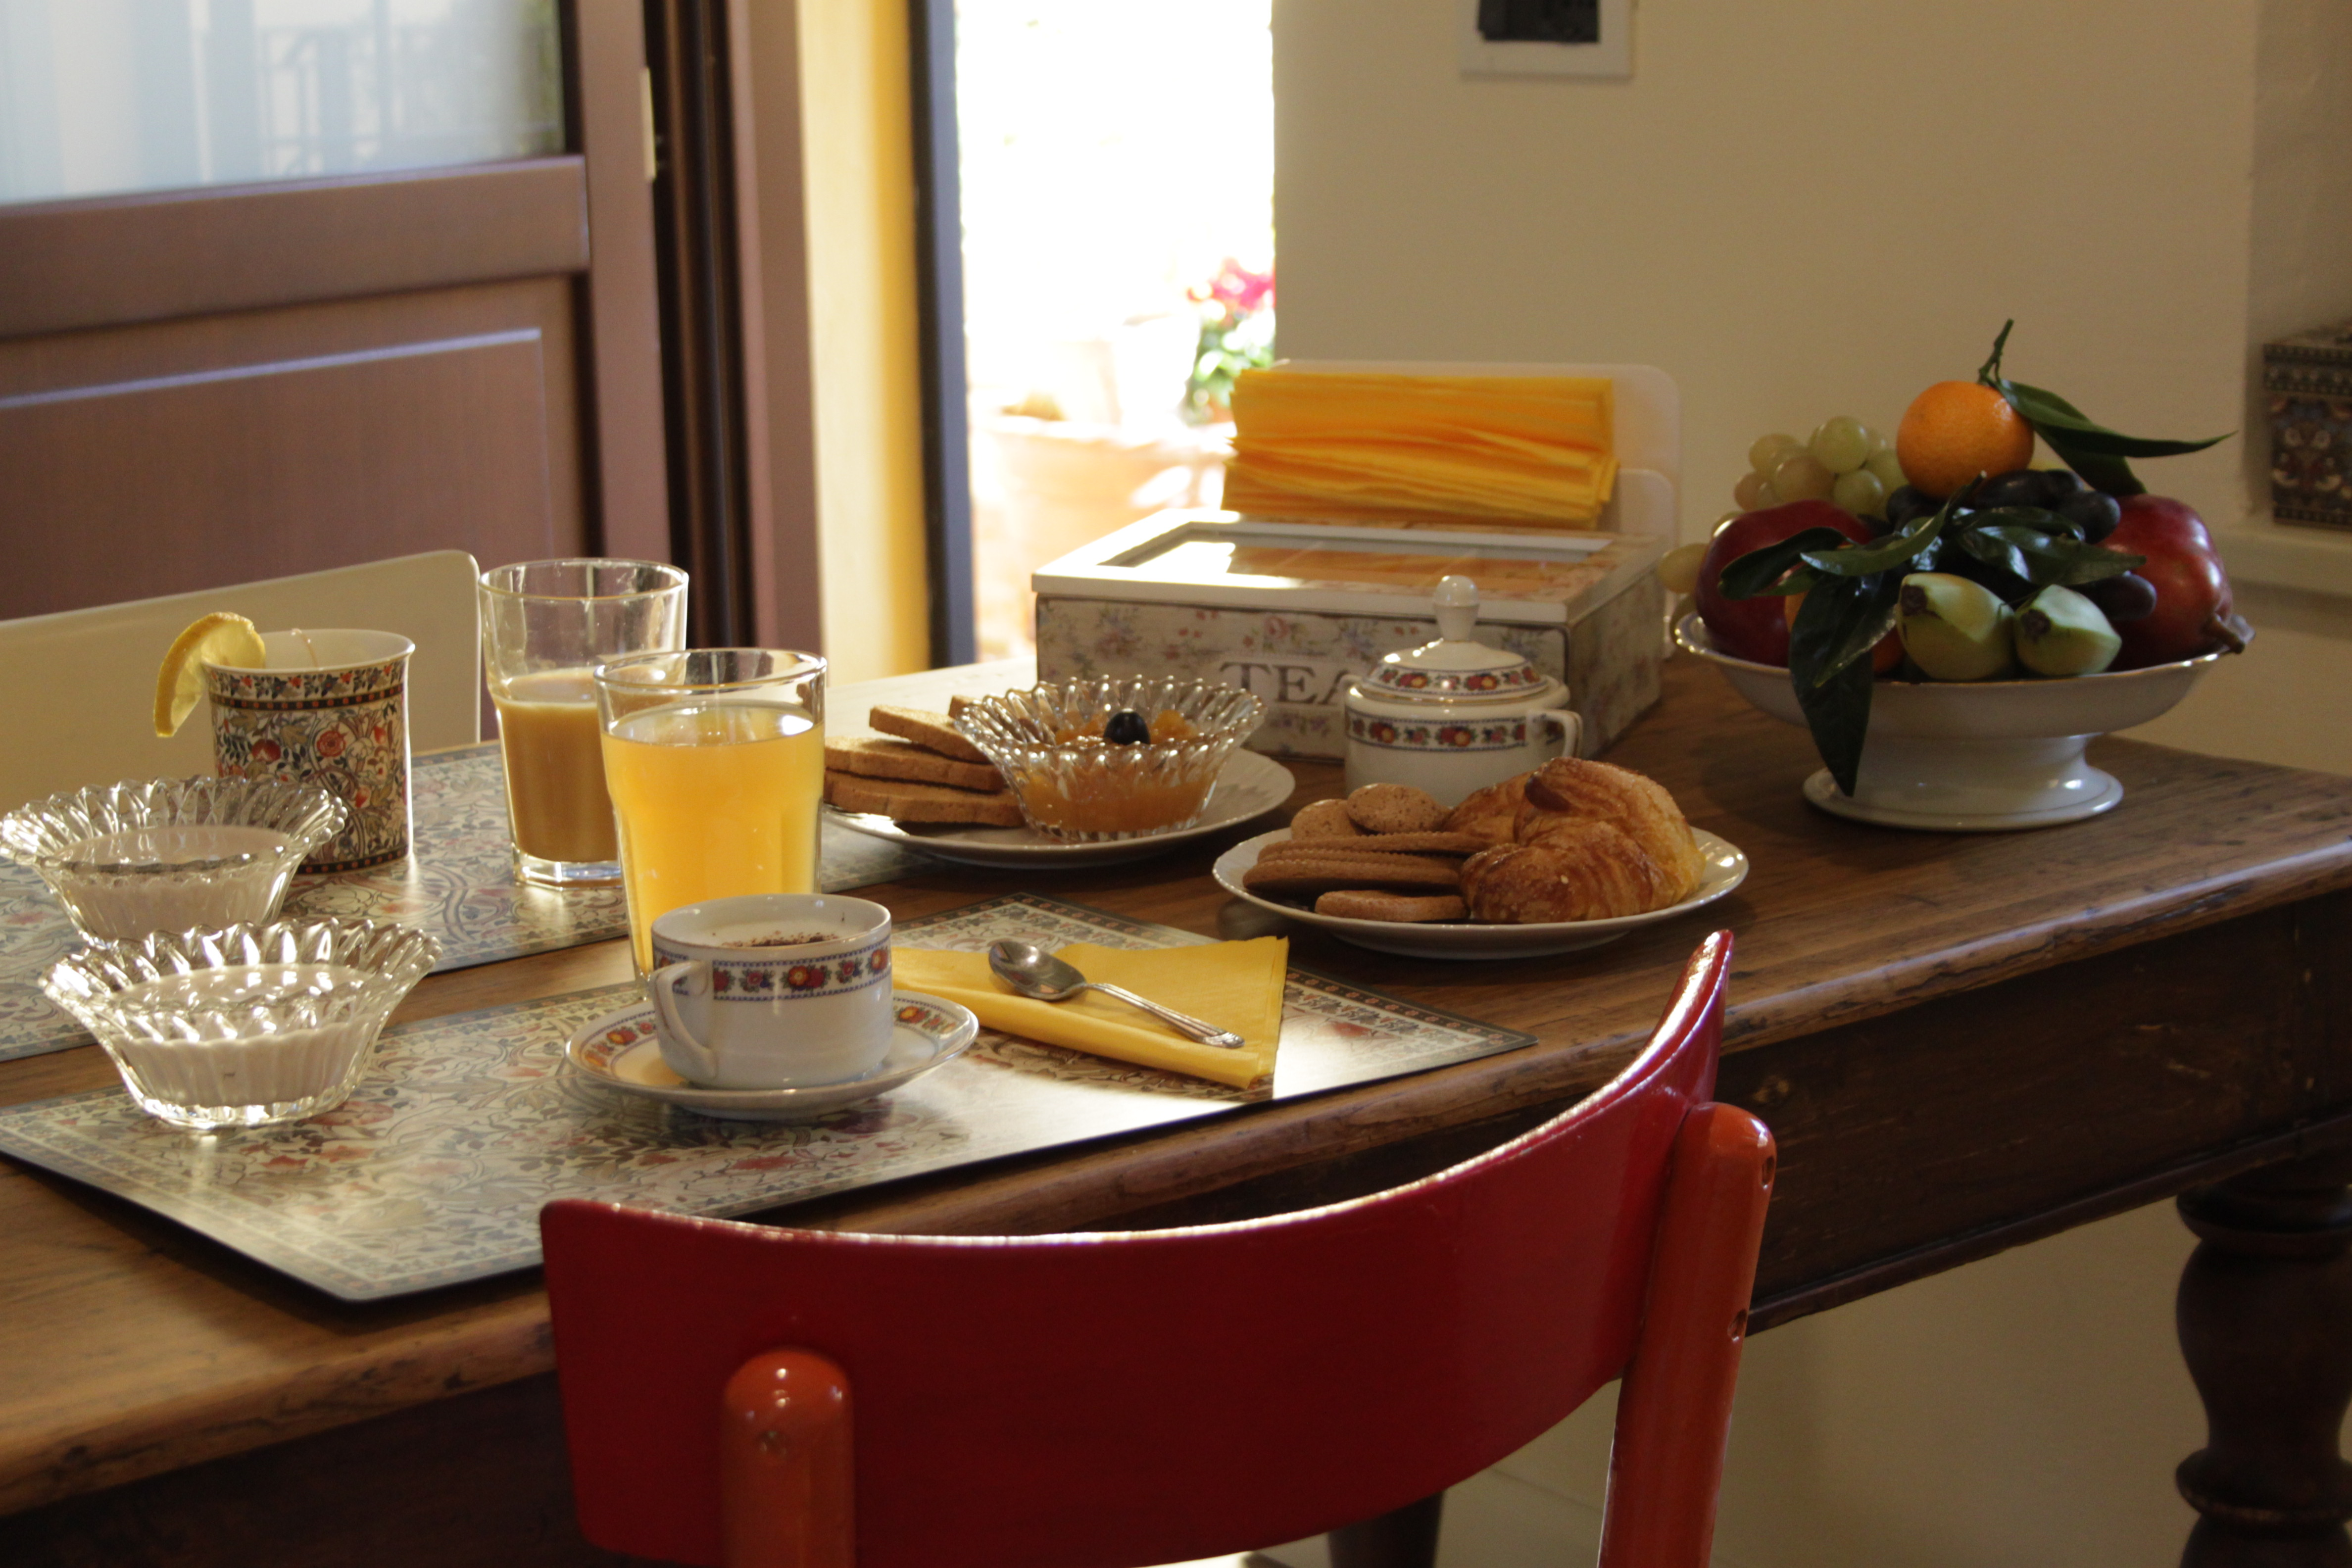 https://www.in-lombardia.it/sites/default/files/accomodation/gallery/104651/19615/colazione.jpg